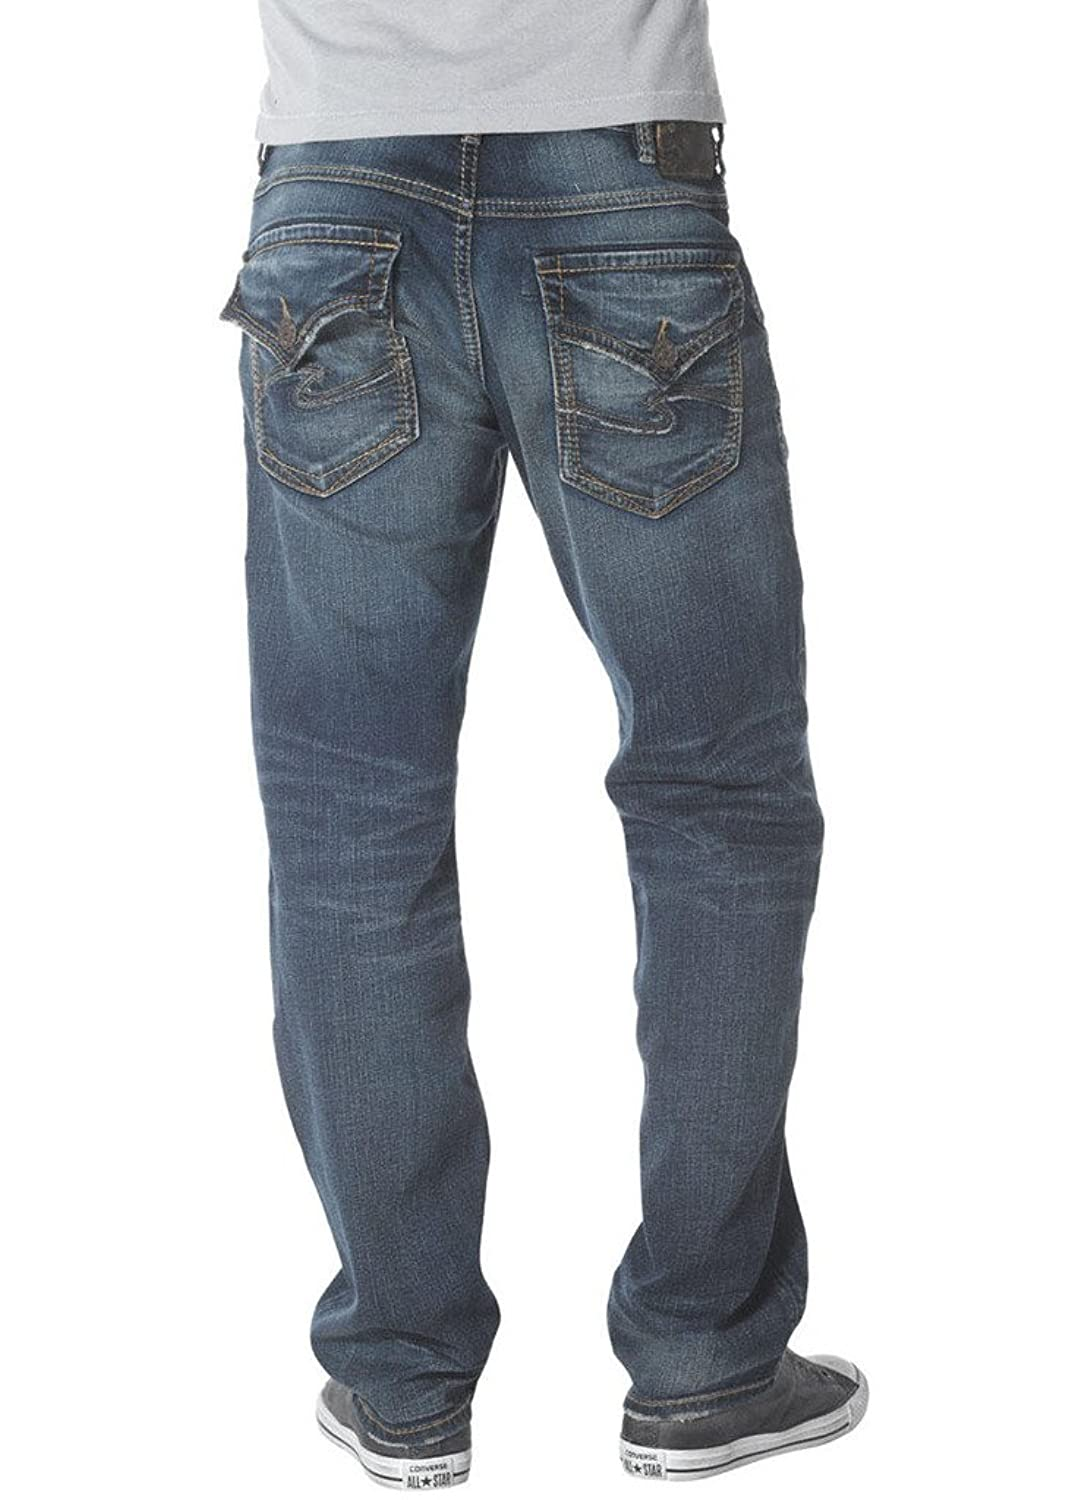 Silver Jeans Men Zac Flap Relaxed Fit Straight Leg Light Distressed in Blue Wash